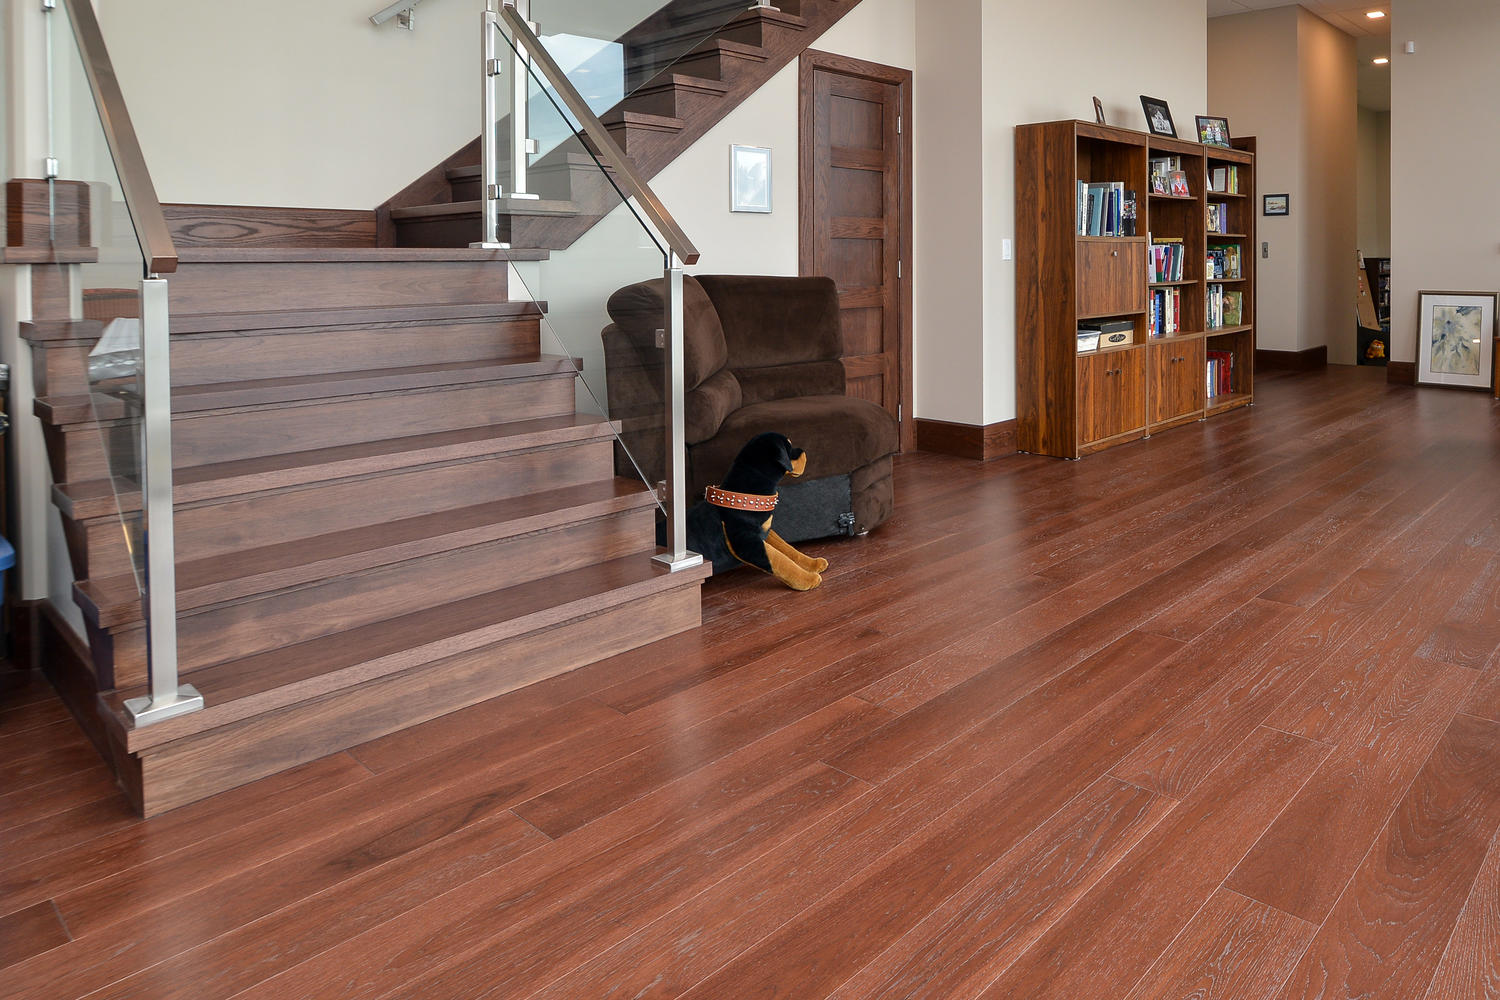 Hickory Wood Flooring custom wood flooring in a kitchen